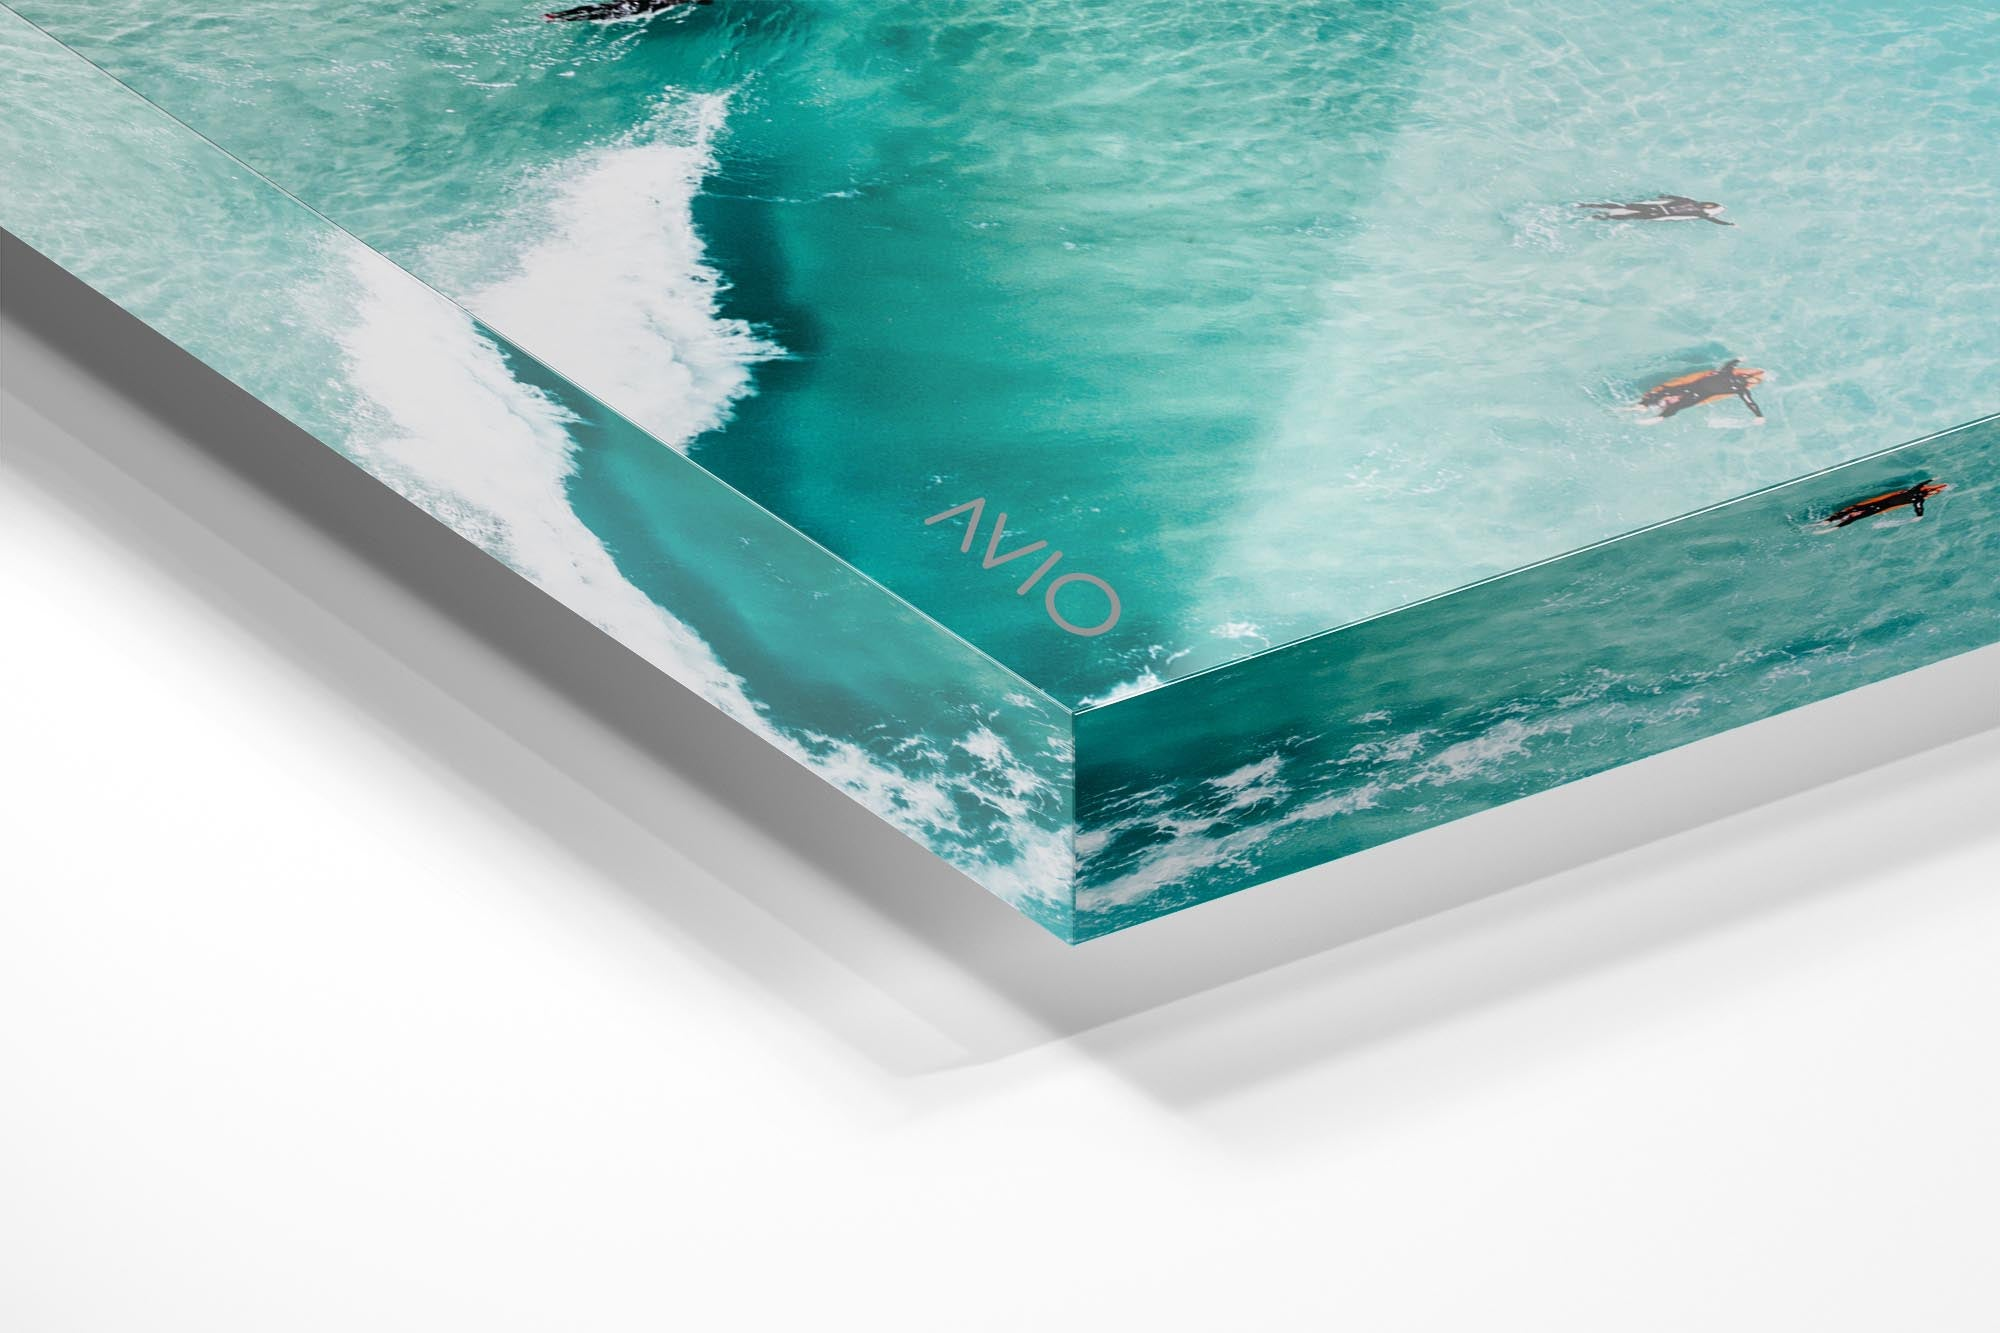 Aerial of surfers duckdiving blue wave at Glen Beach in Cape Town in an acrylic/perspex frame